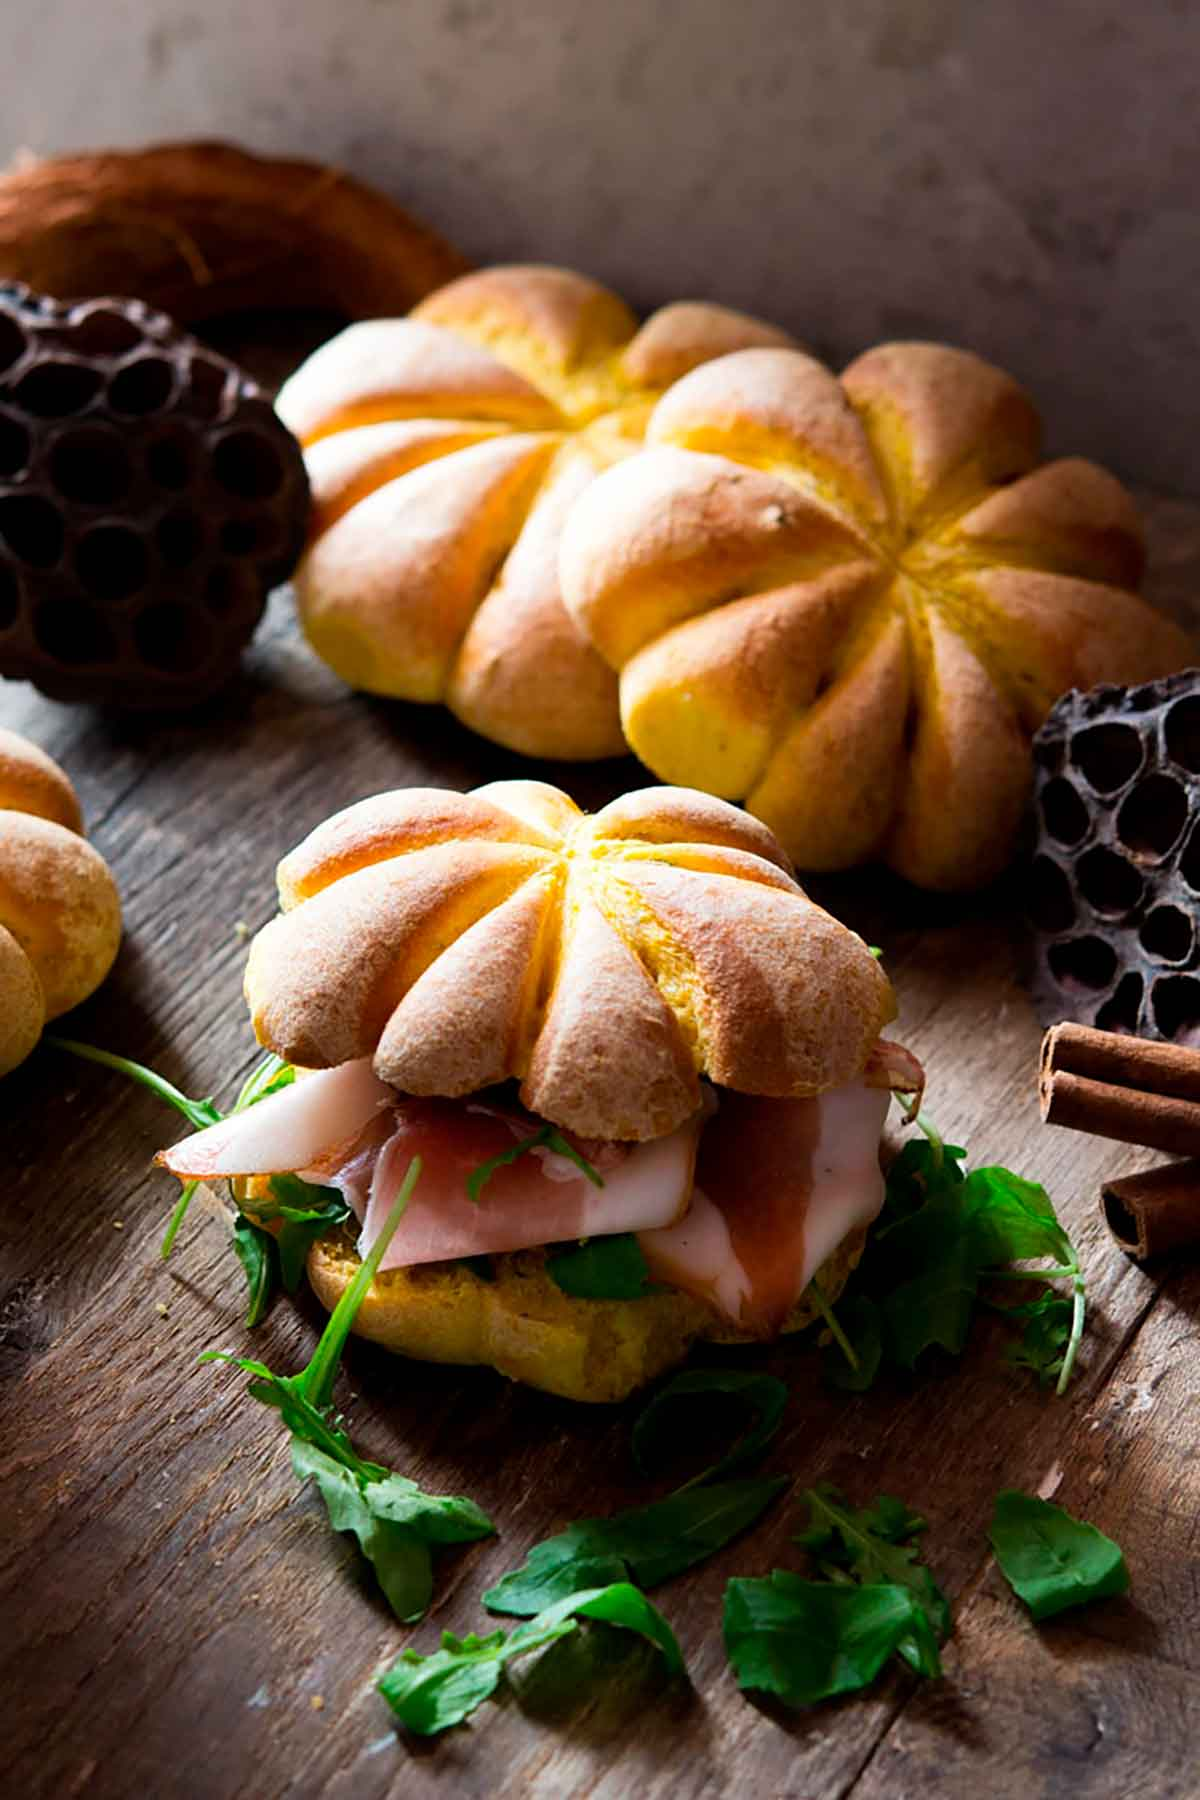 A small sandwich topped with a pumpkin roll on a table, with 2 pumpkin rolls in the background.